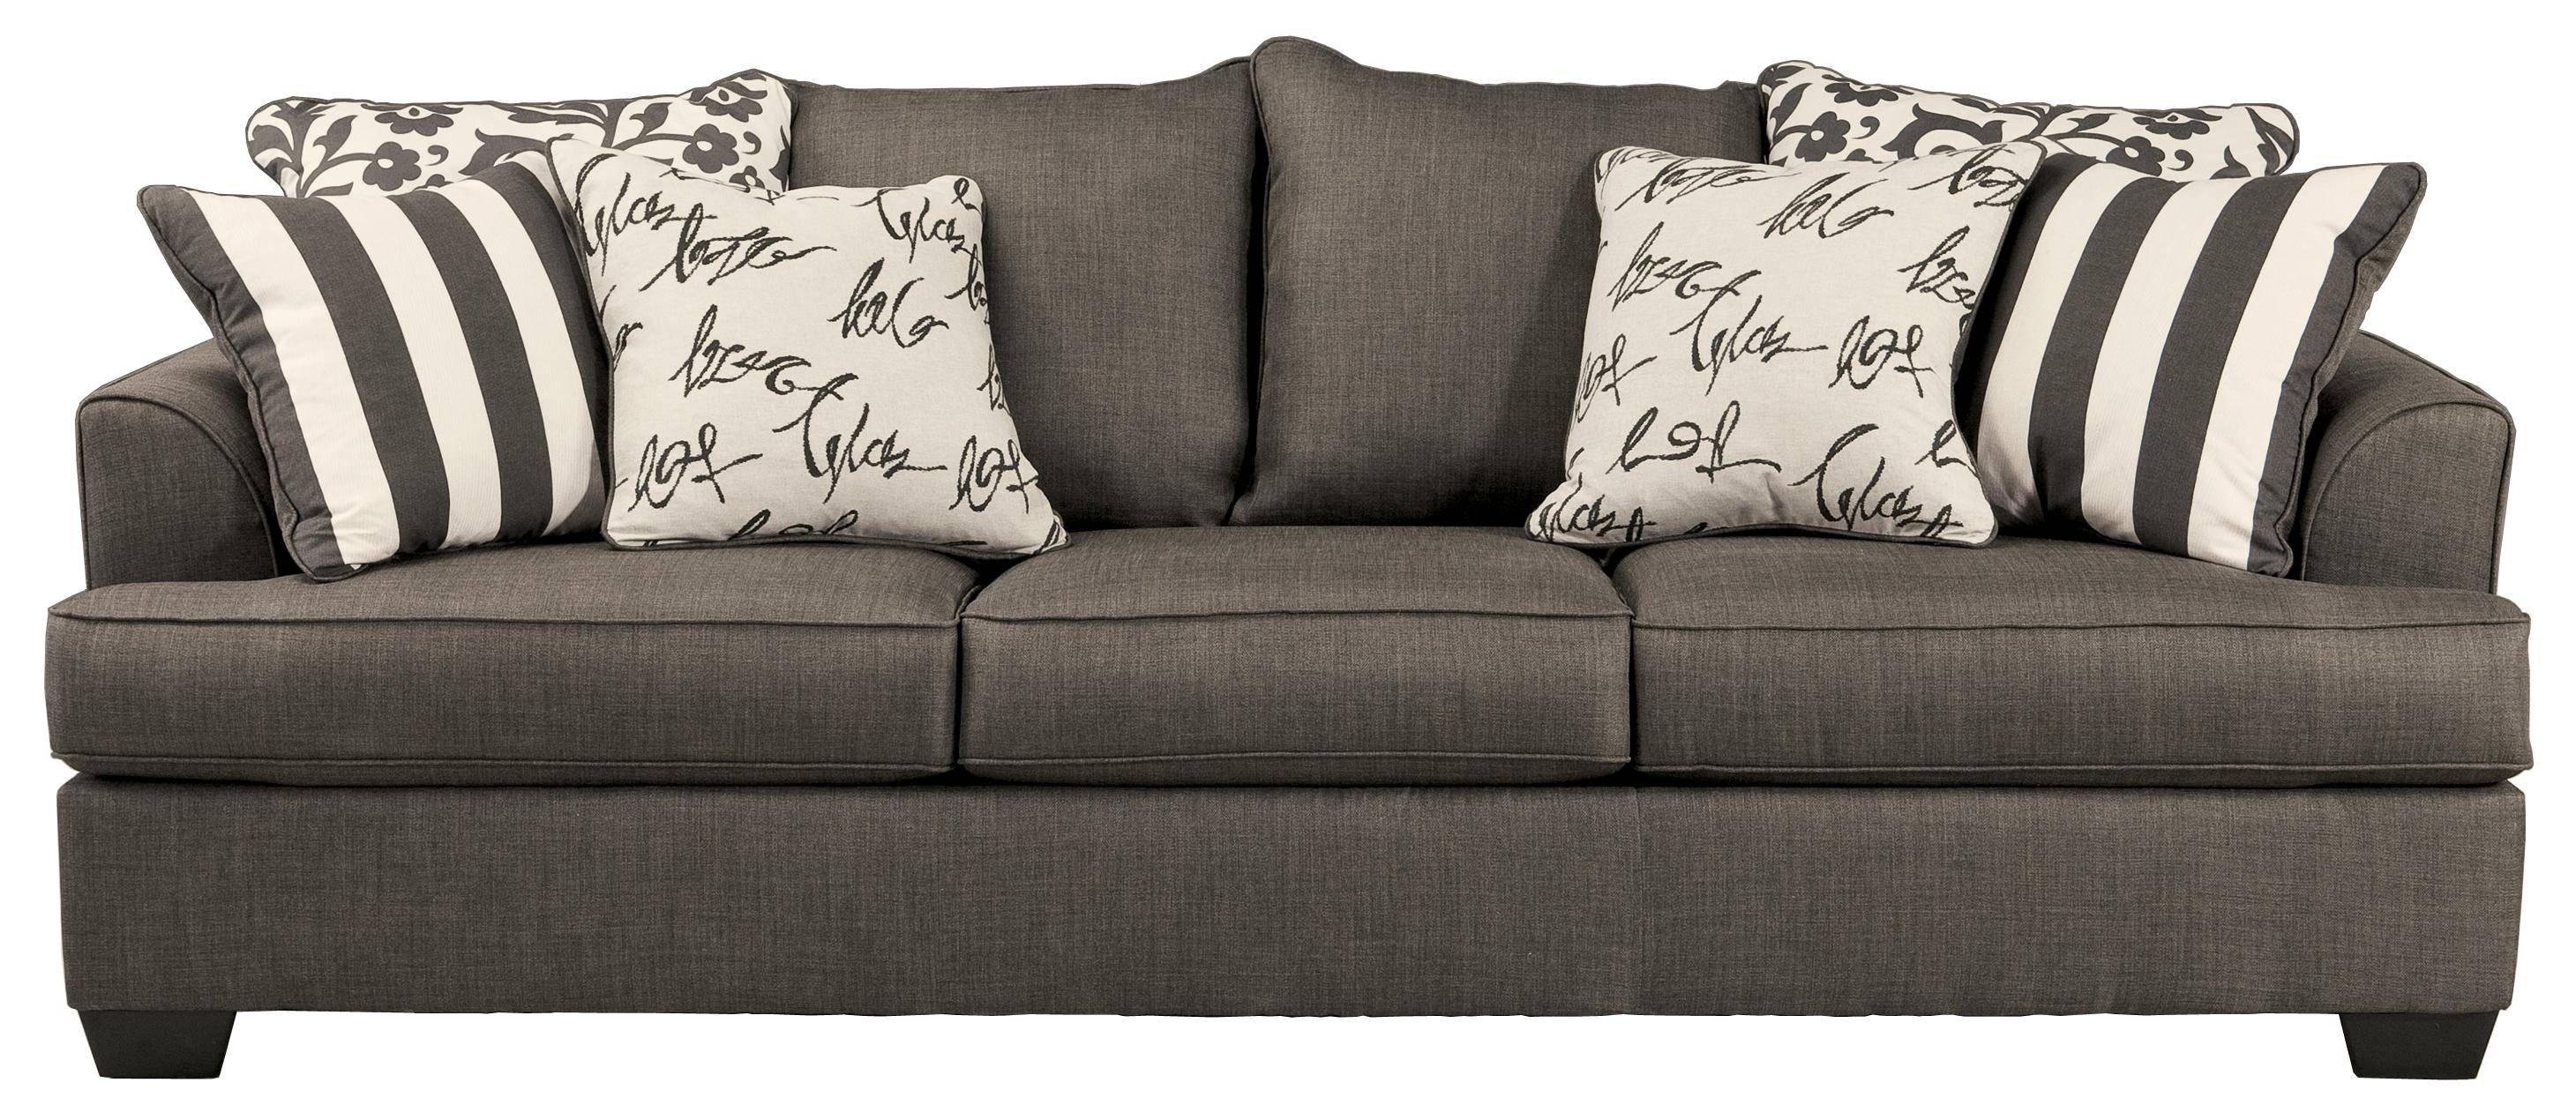 Signature Designashley Levon - Charcoal Queen Sofa Sleeper with Ashley Furniture Gray Sofa (Image 27 of 30)